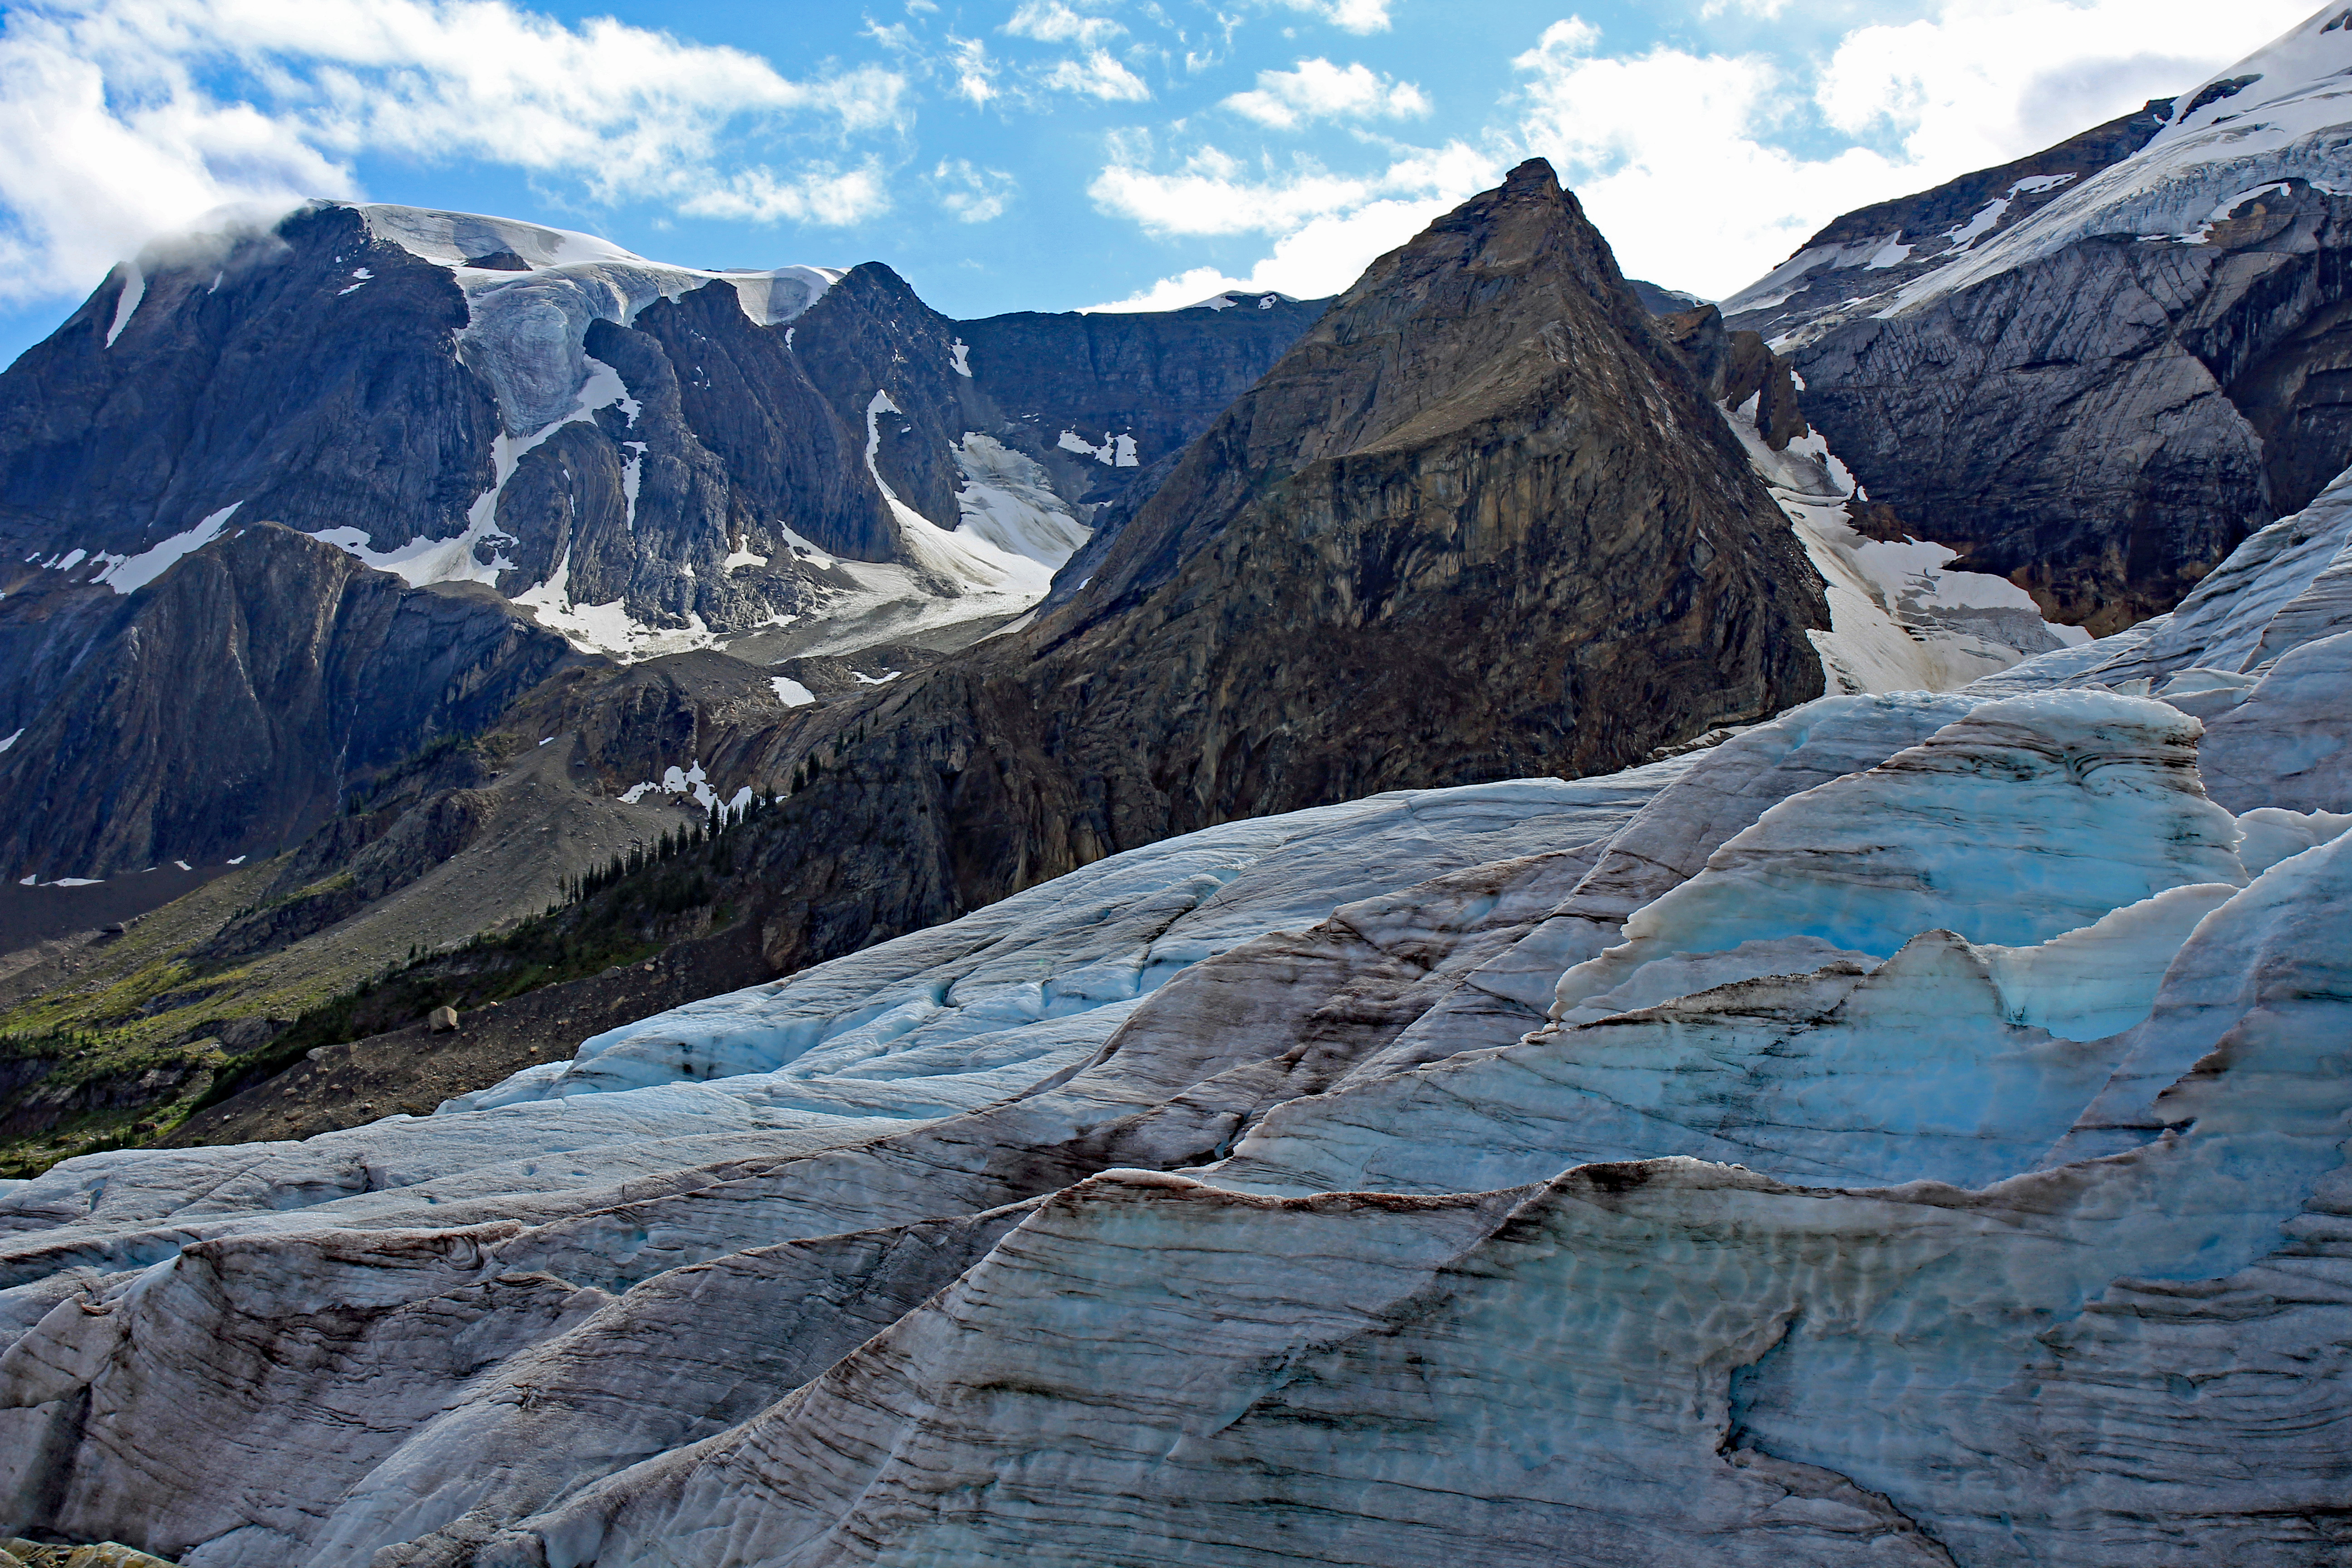 "<p>Mount Mummery Glacier Trail near Golden. BC</p><p class=""lightbox-share""><span>Share: </span><a class=""lightbox-fb"" href=""javascript:void(0);"">Facebook</a><a class=""lightbox-twit"" href=""https://twitter.com/home?status=I%20voted%20for%20Mummery%20Glacier%20in%20the%20Cornice%20Calendar%20Contest.%20Choose%20your%20favourite%206%20photos:%20http://ow.ly/yCSmZ"" target=""_blank"">Twitter</a></p><input type=hidden class=voteid value=1914 />"